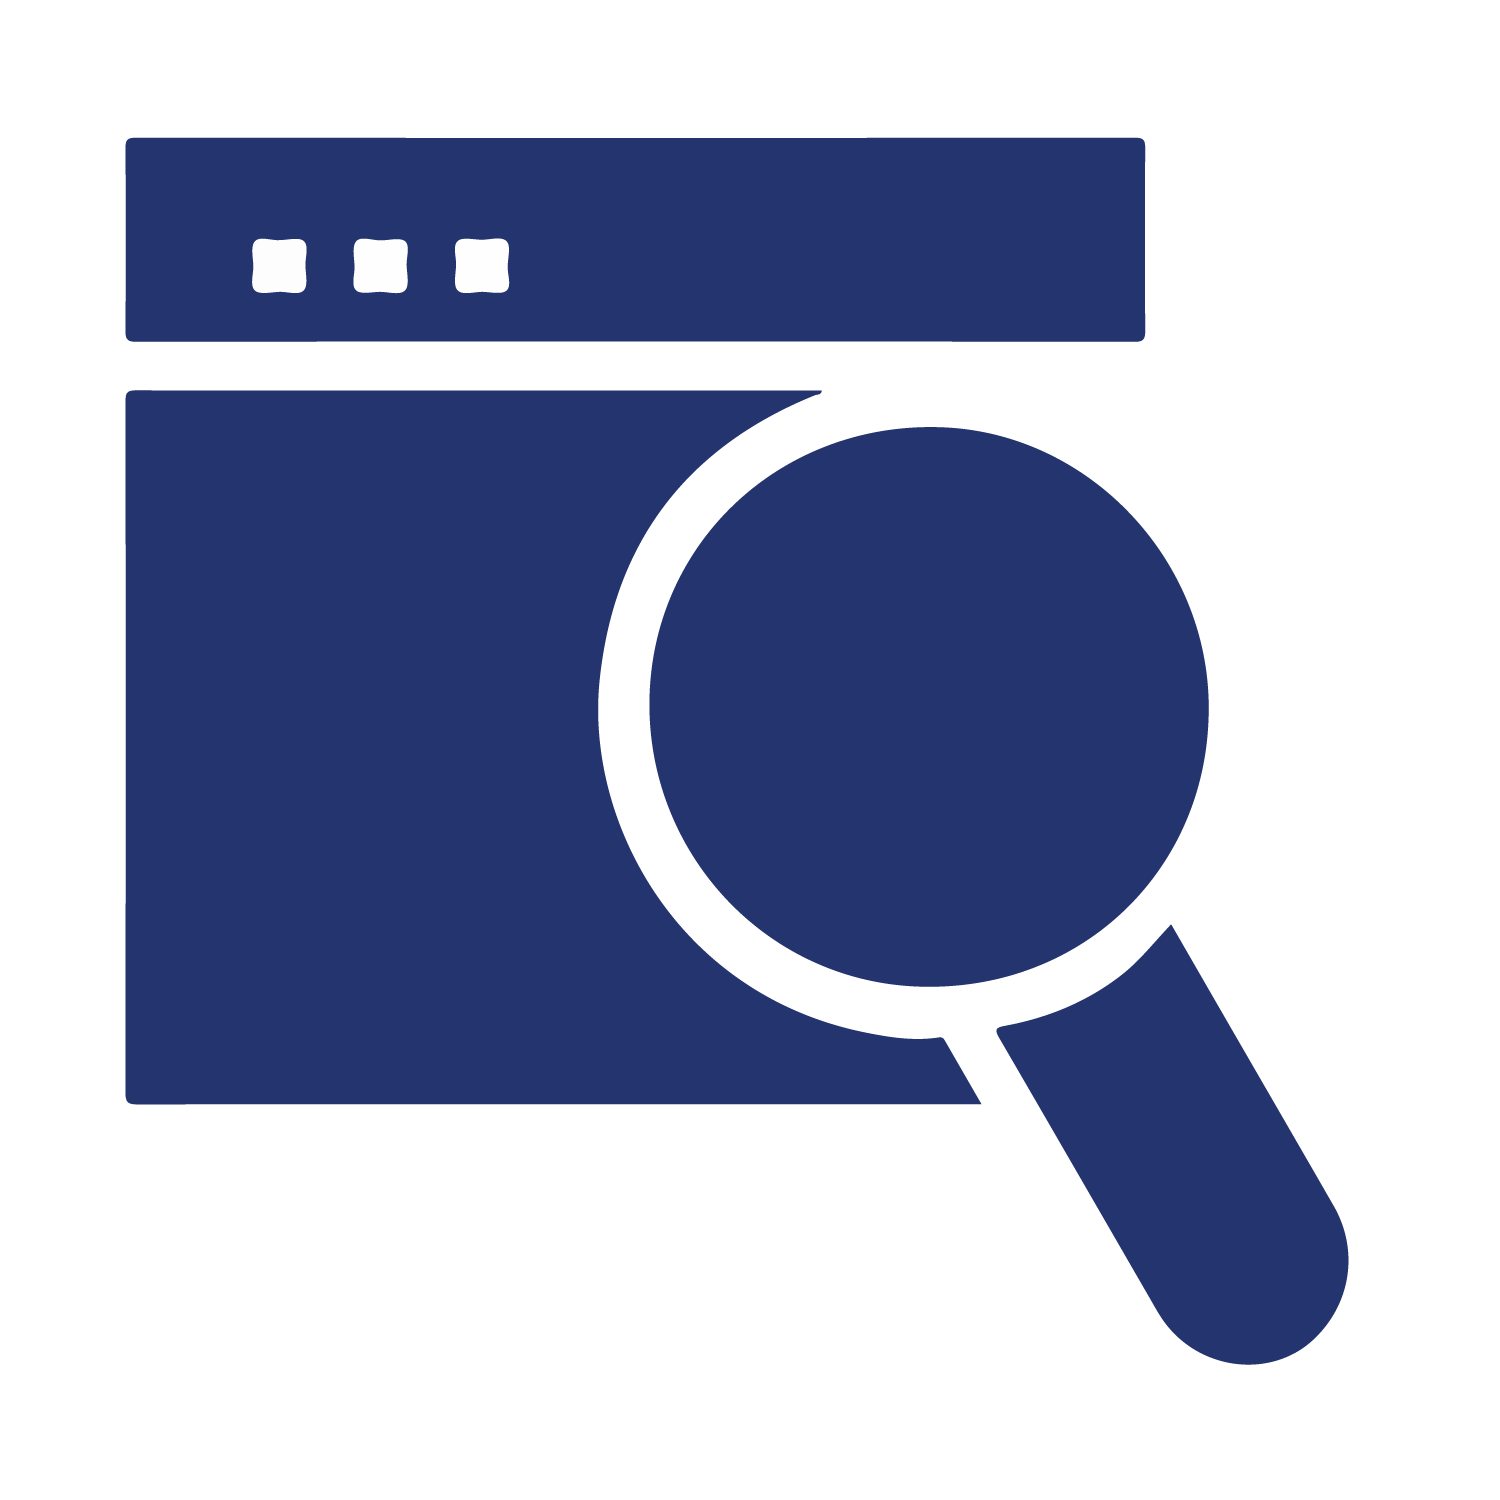 Monitor-specific-keywords-on-the-social-web